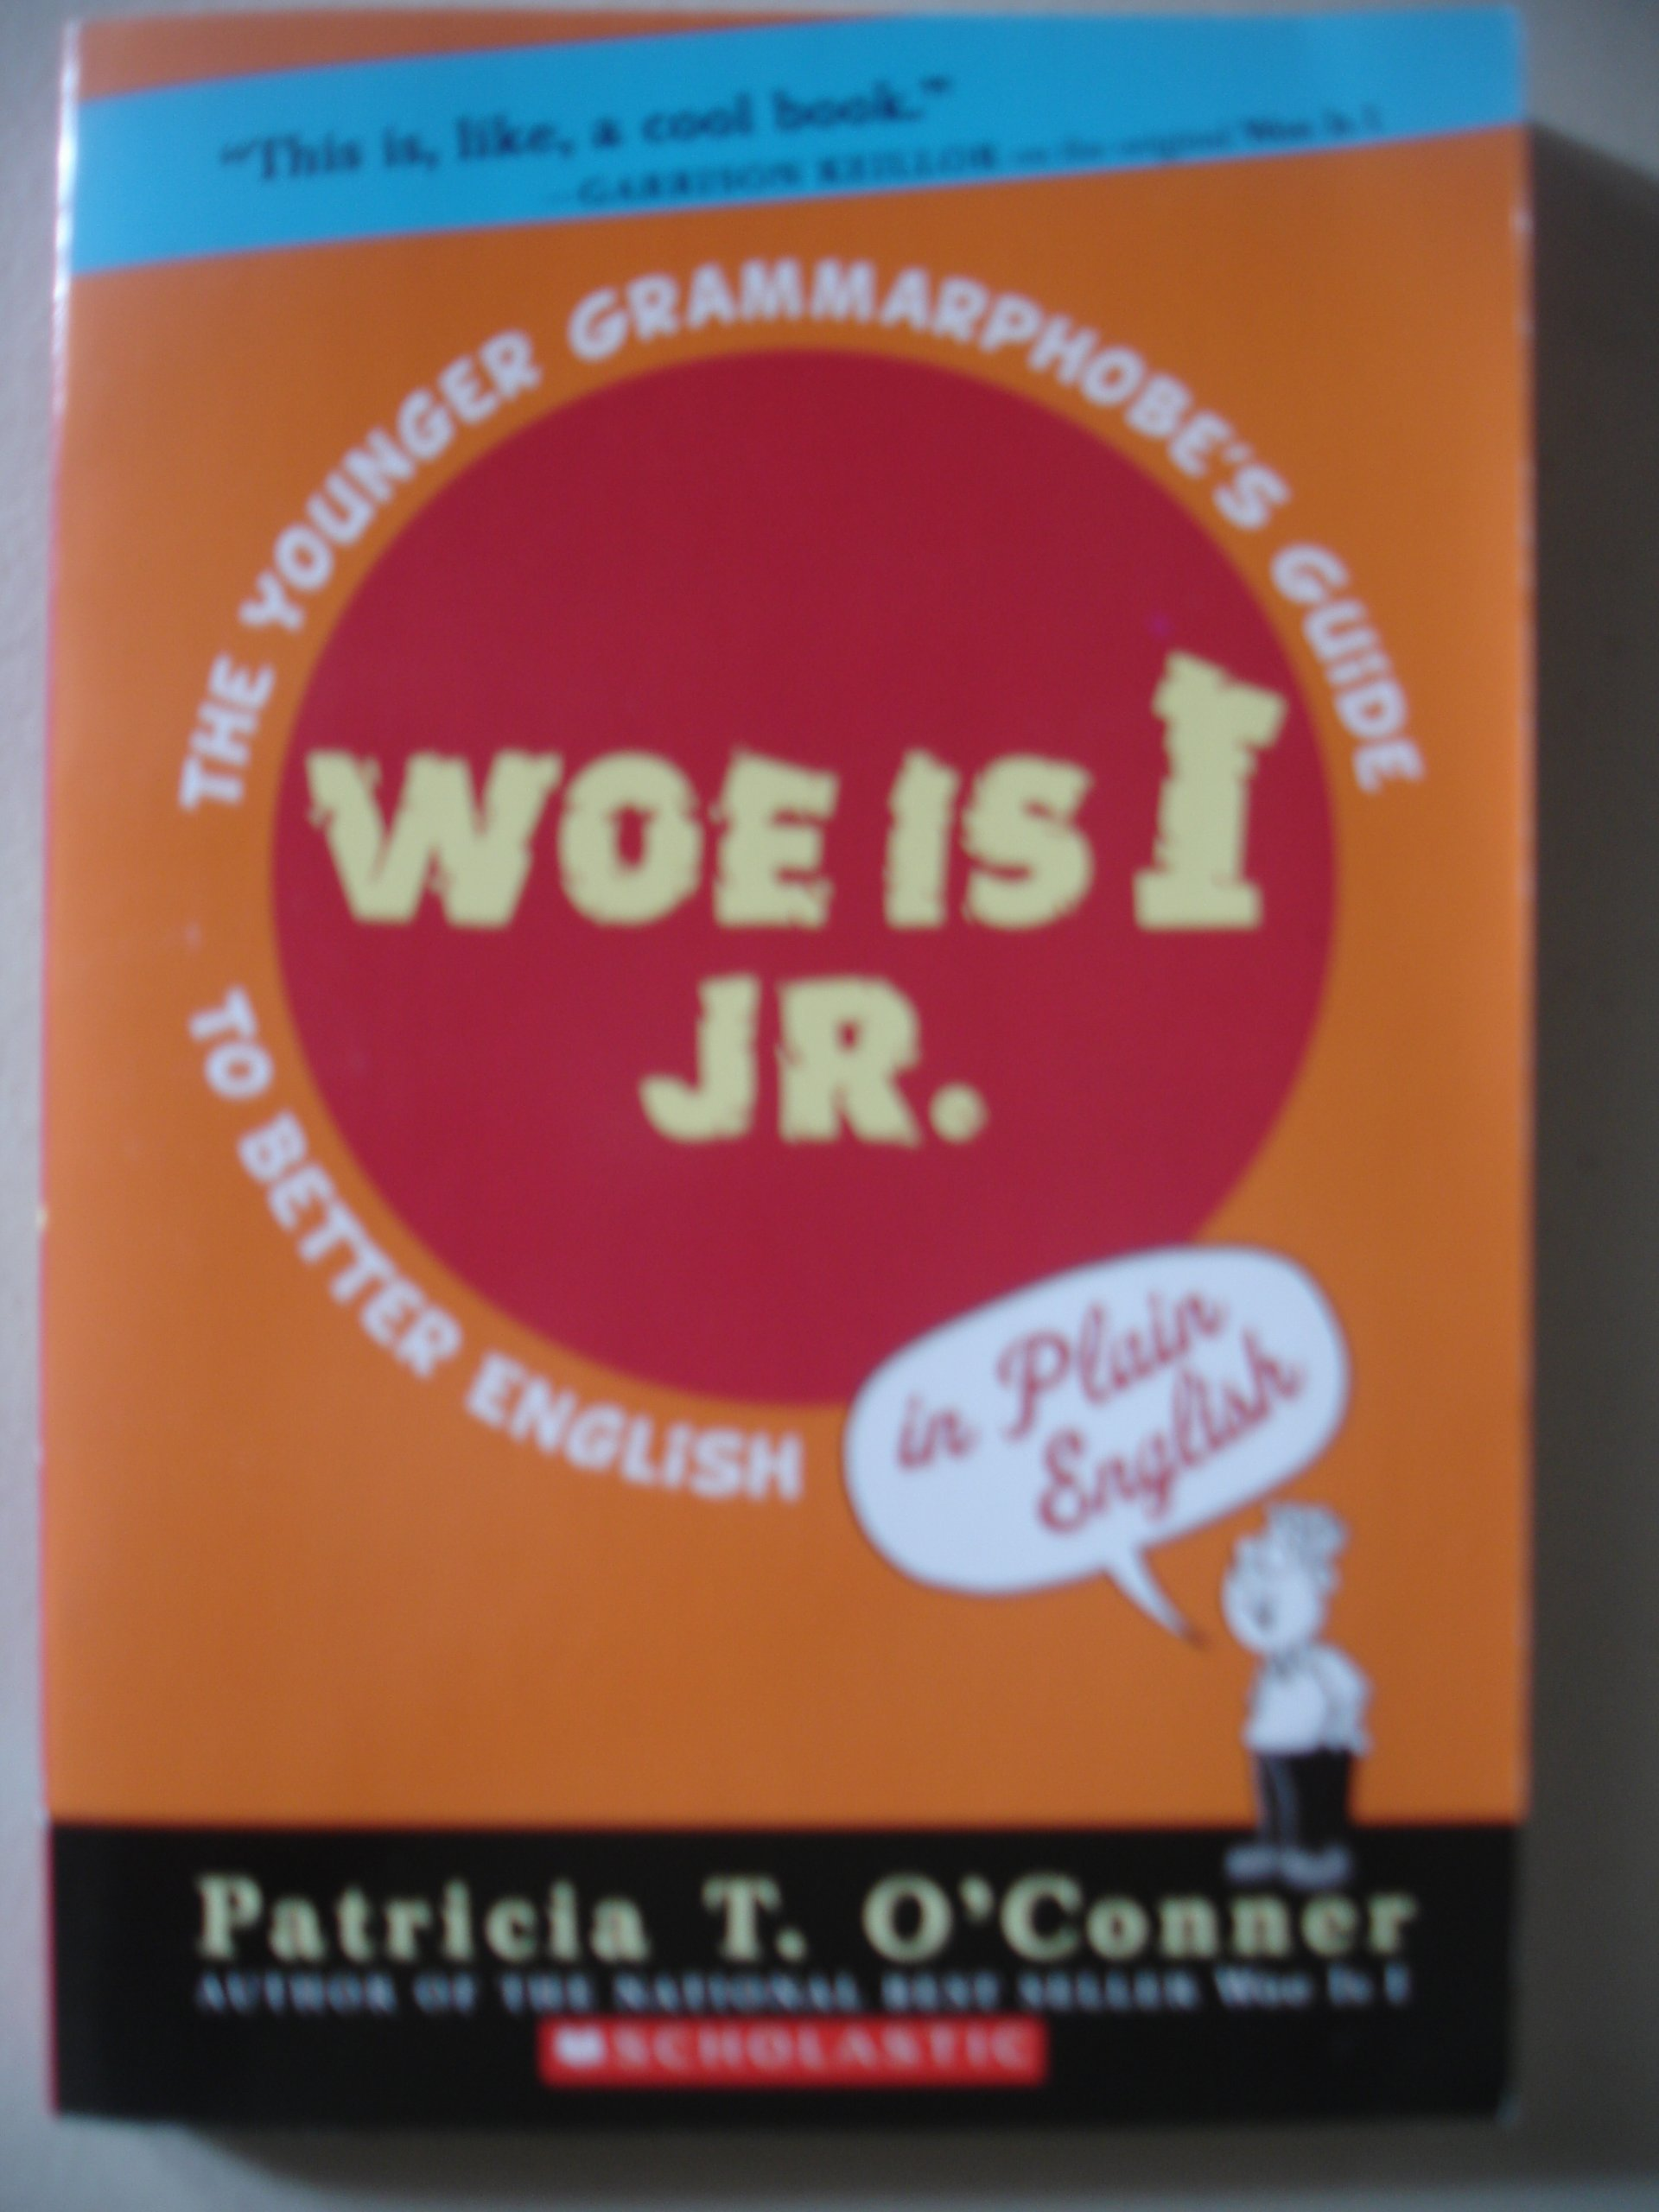 Read Online Woe is I Jr.: The Younger Grammarphobe's Guide to Better English PDF